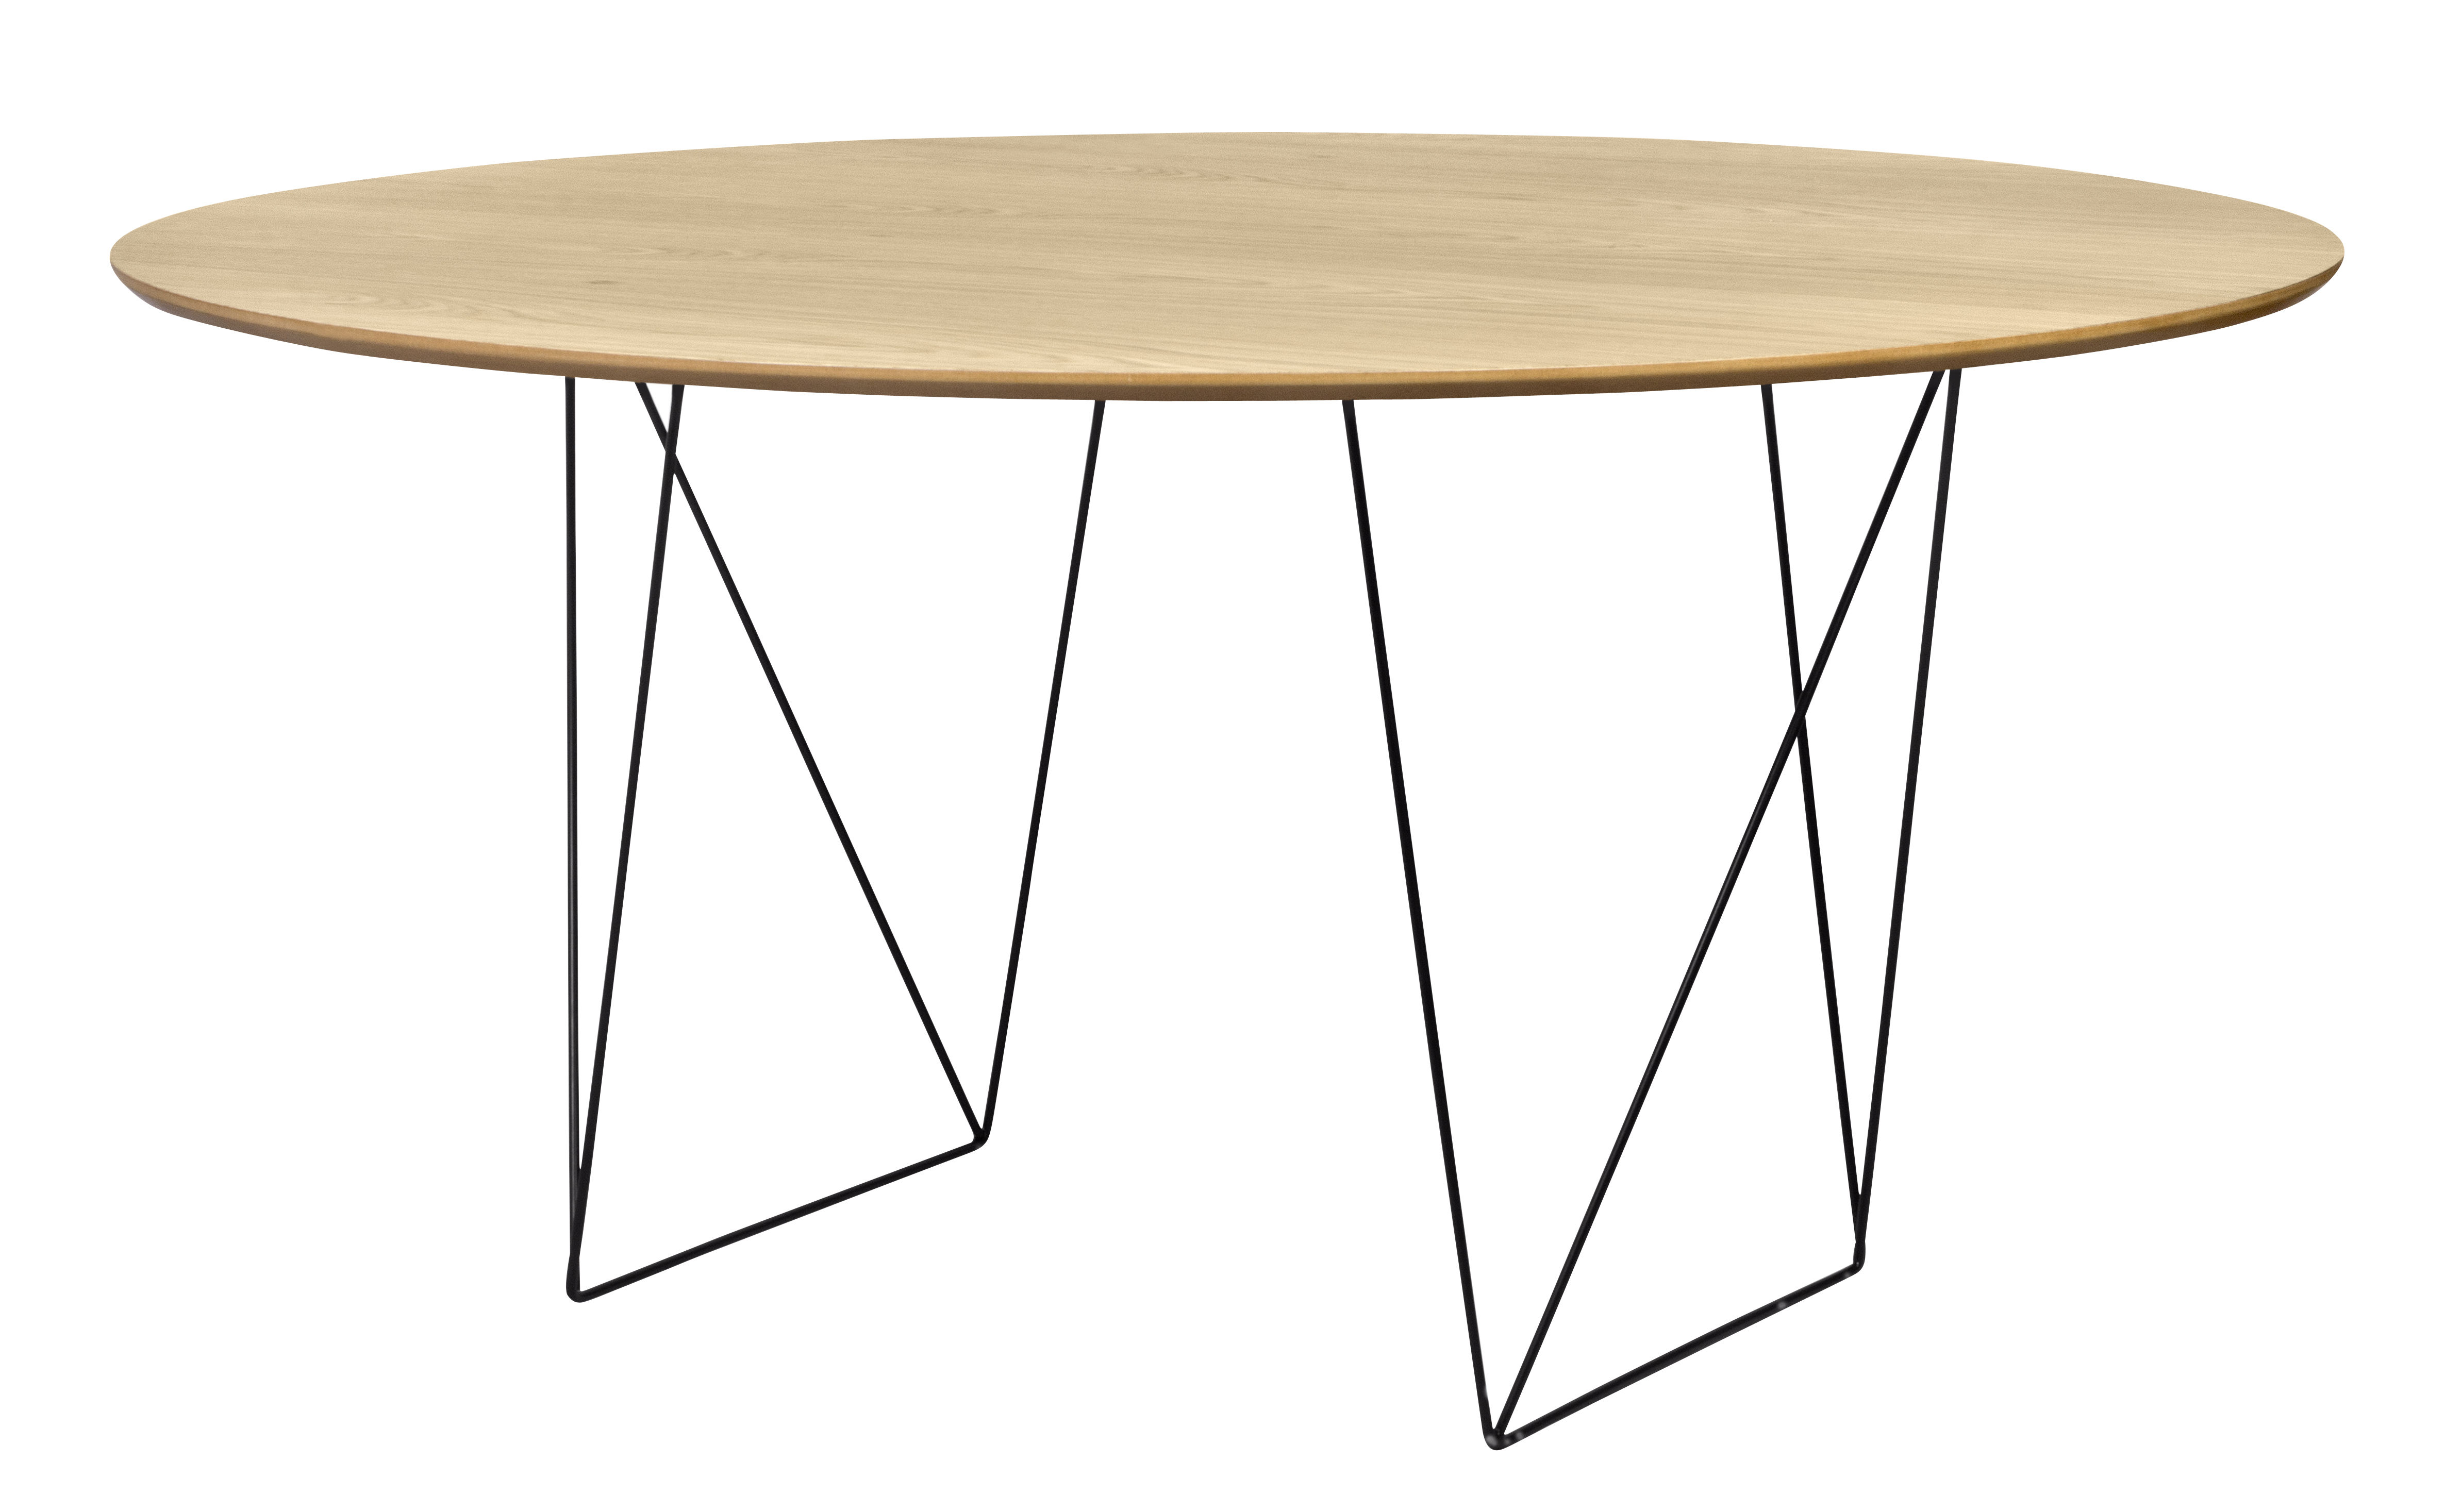 Trends - Take your seat! - Trestle Round table - / Ø 150 cm by POP UP HOME - Oak / White foot - Honeycomb panels with oak veneer, Lacquered metal